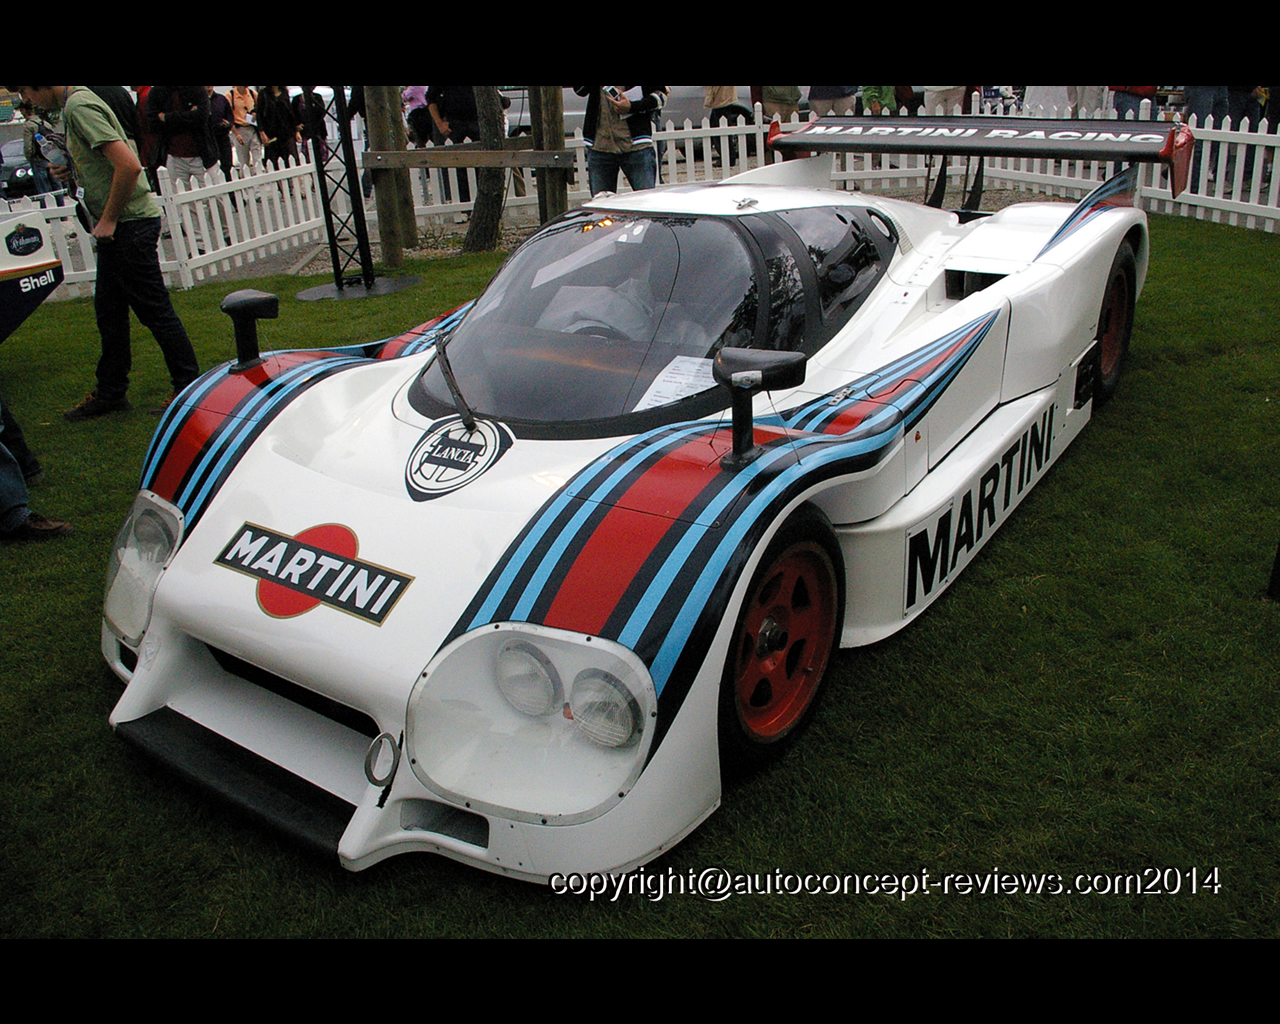 Lc Spa Lancia Martini Lc2 Group C Endurance Racing Car 1983 1985